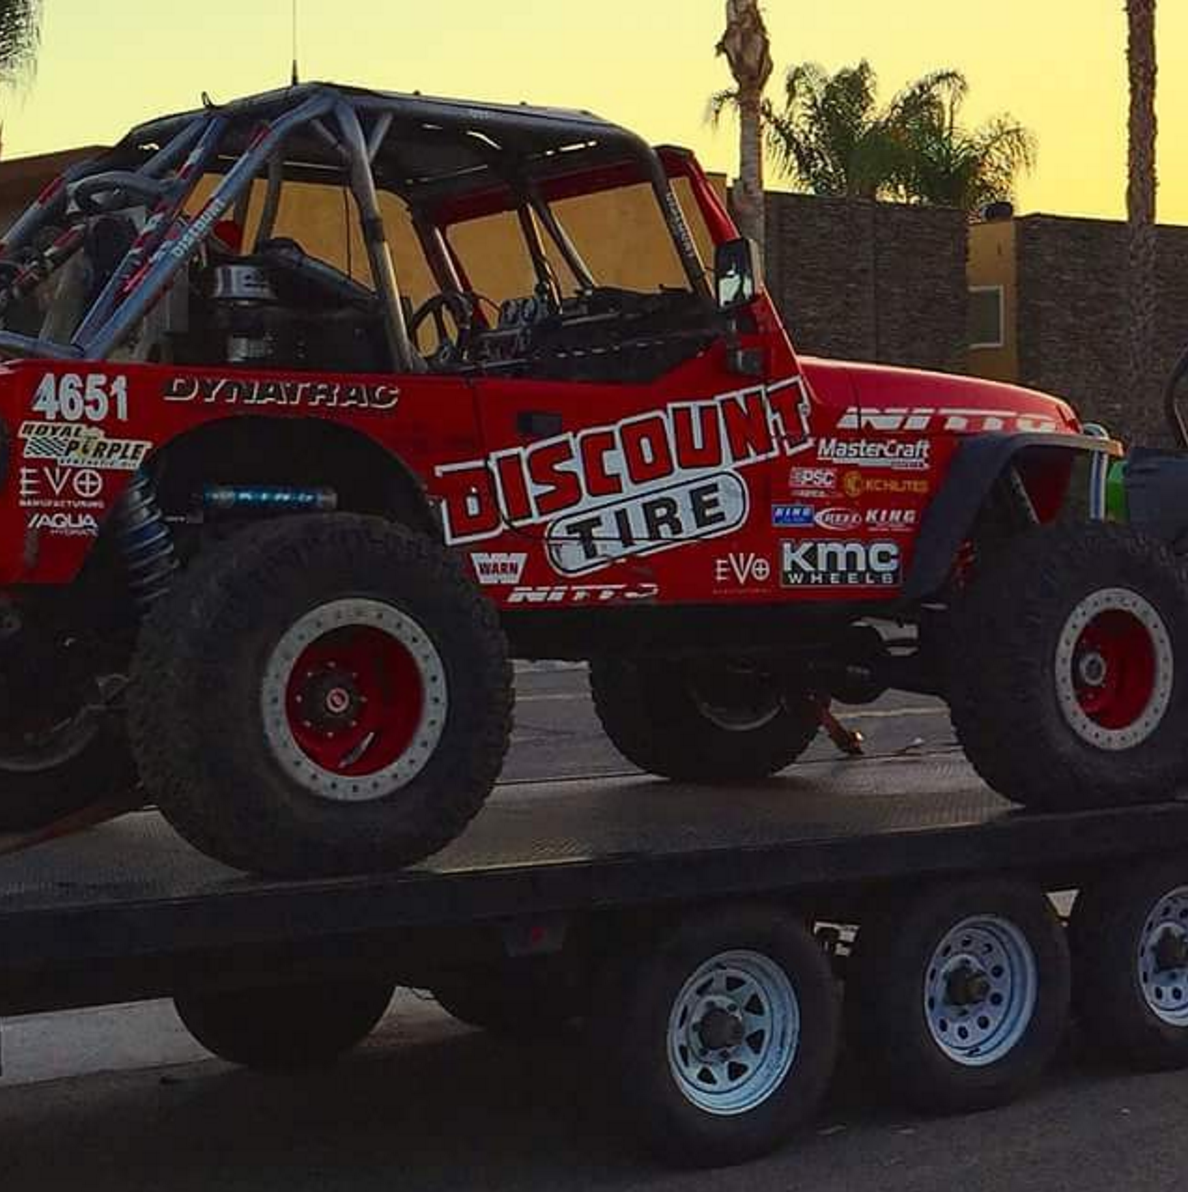 #Help This TJ was stolen in SoCal along with a 2014 Kawasaki Teryx and the 30ft Aztec deck trailer #SHARE https://t.co/olsy7XmTfK